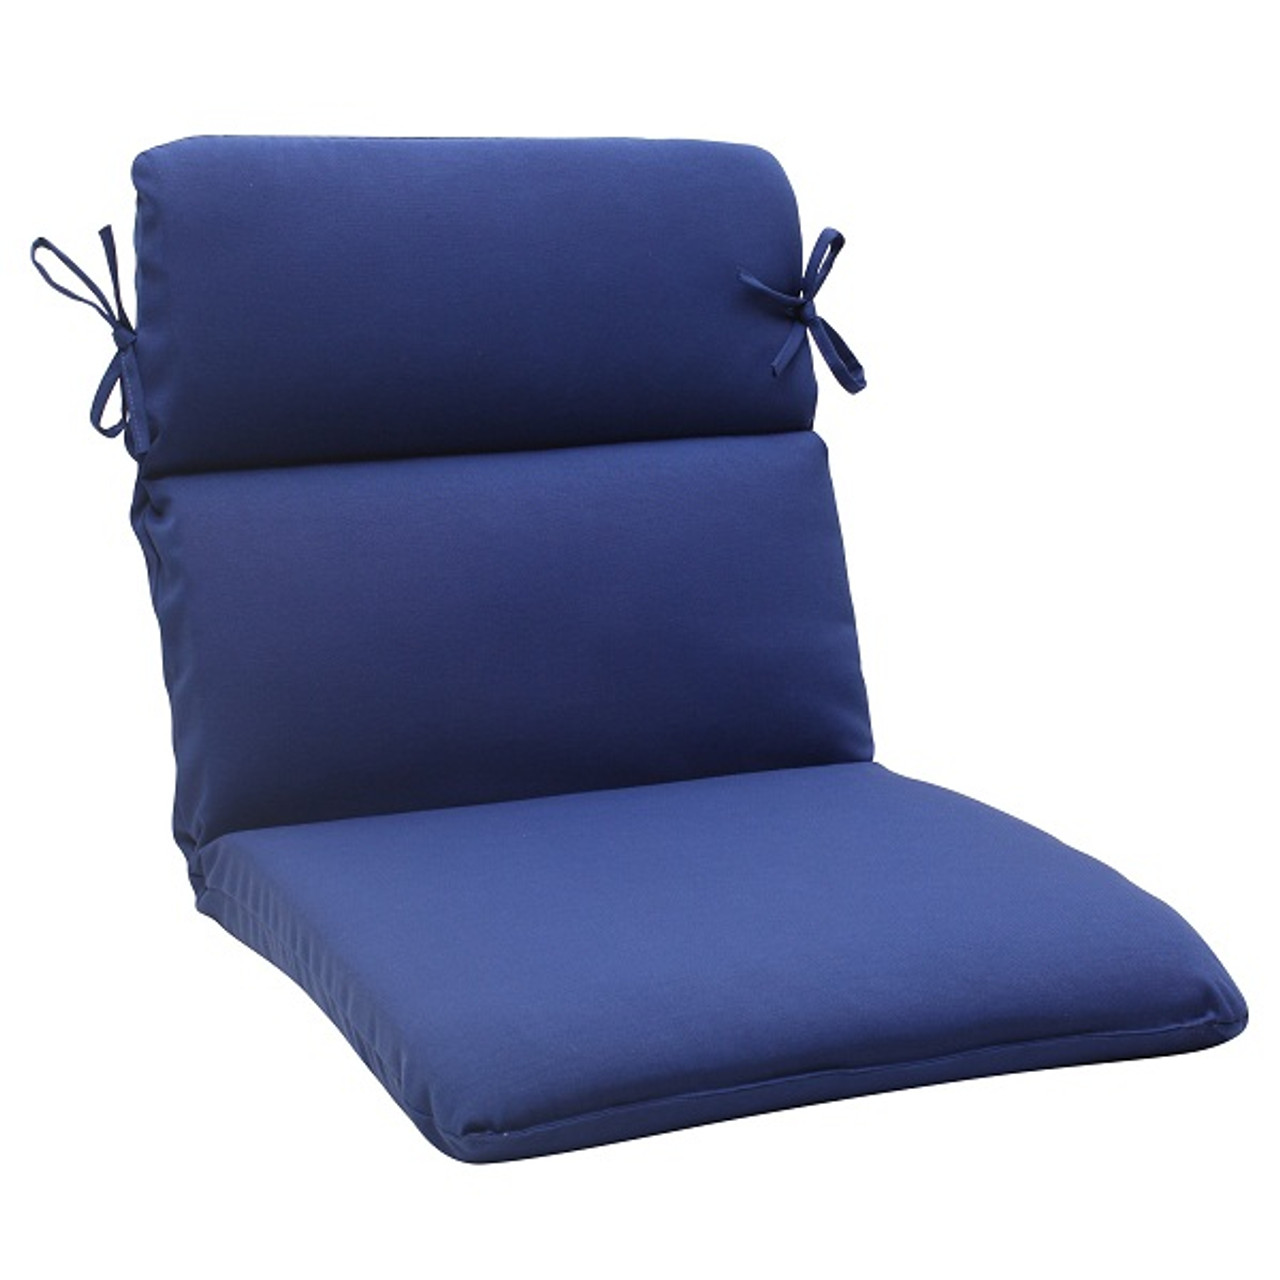 40 5 Traditional Navy Blue Outdoor Patio Rounded Chair Cushion With Ties 30951619